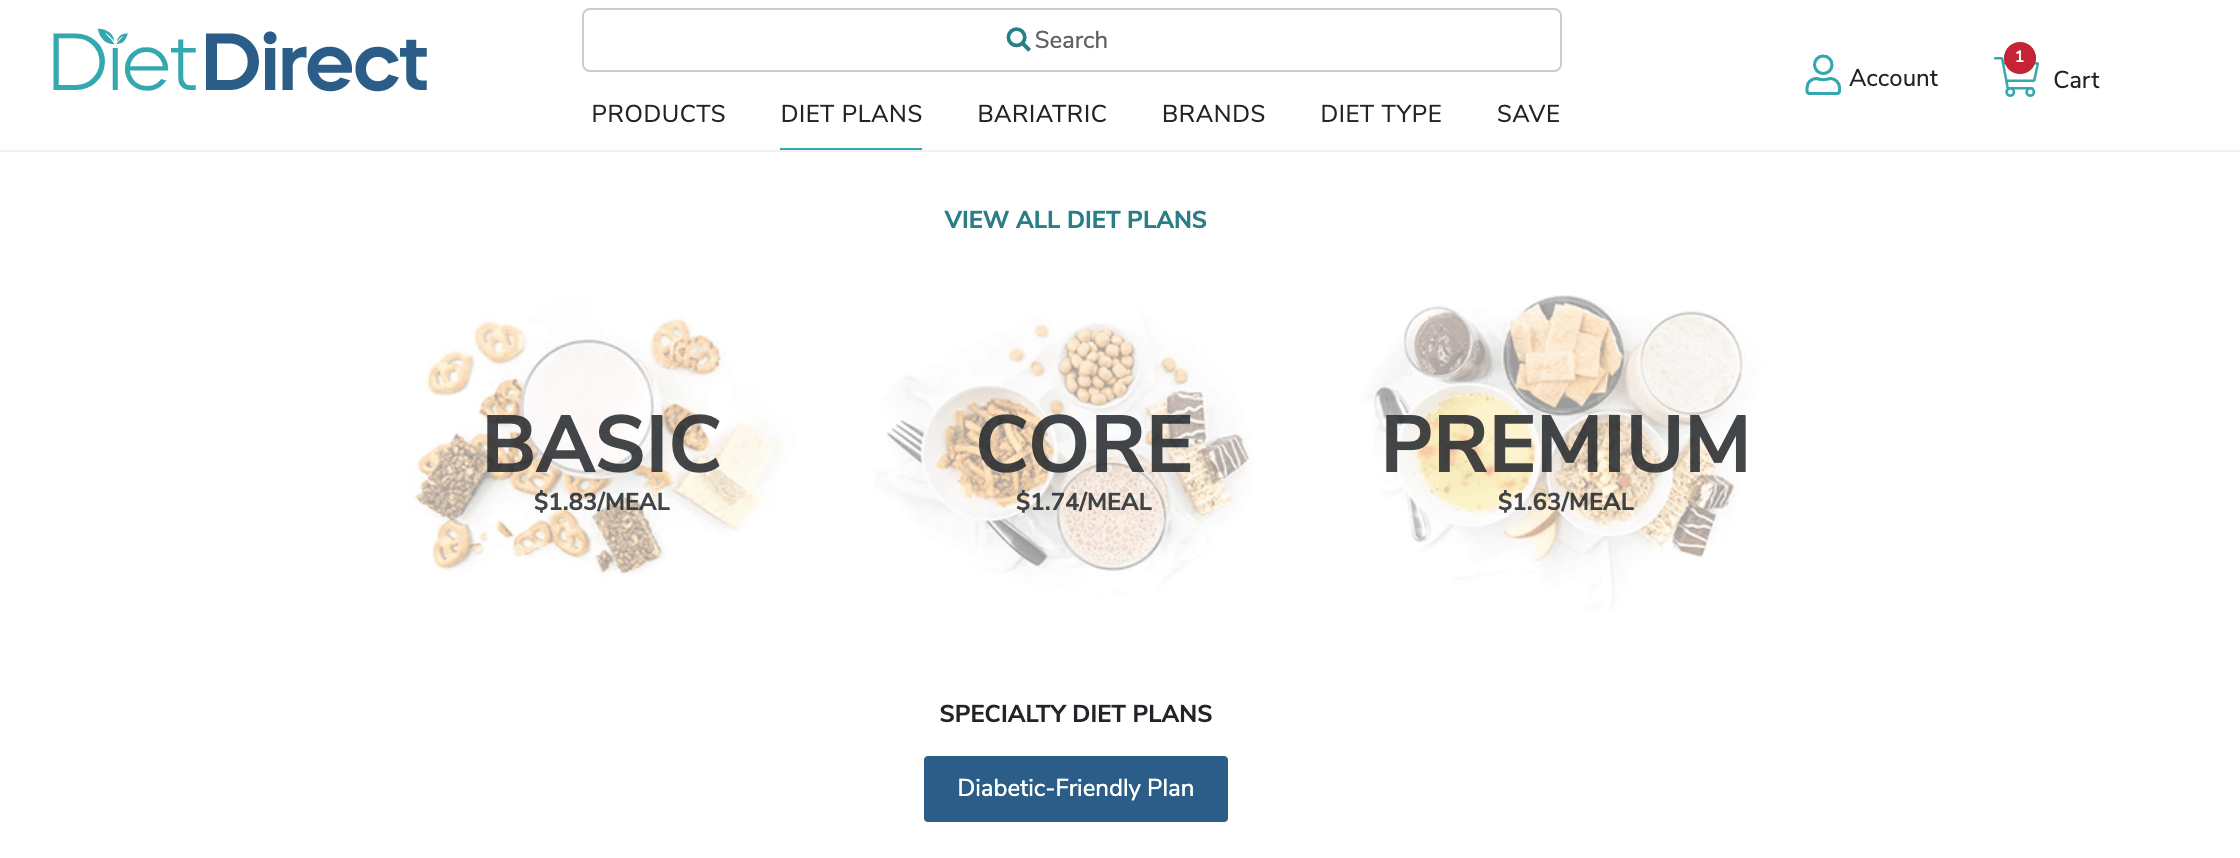 Basic, core, and premium diet direct plans